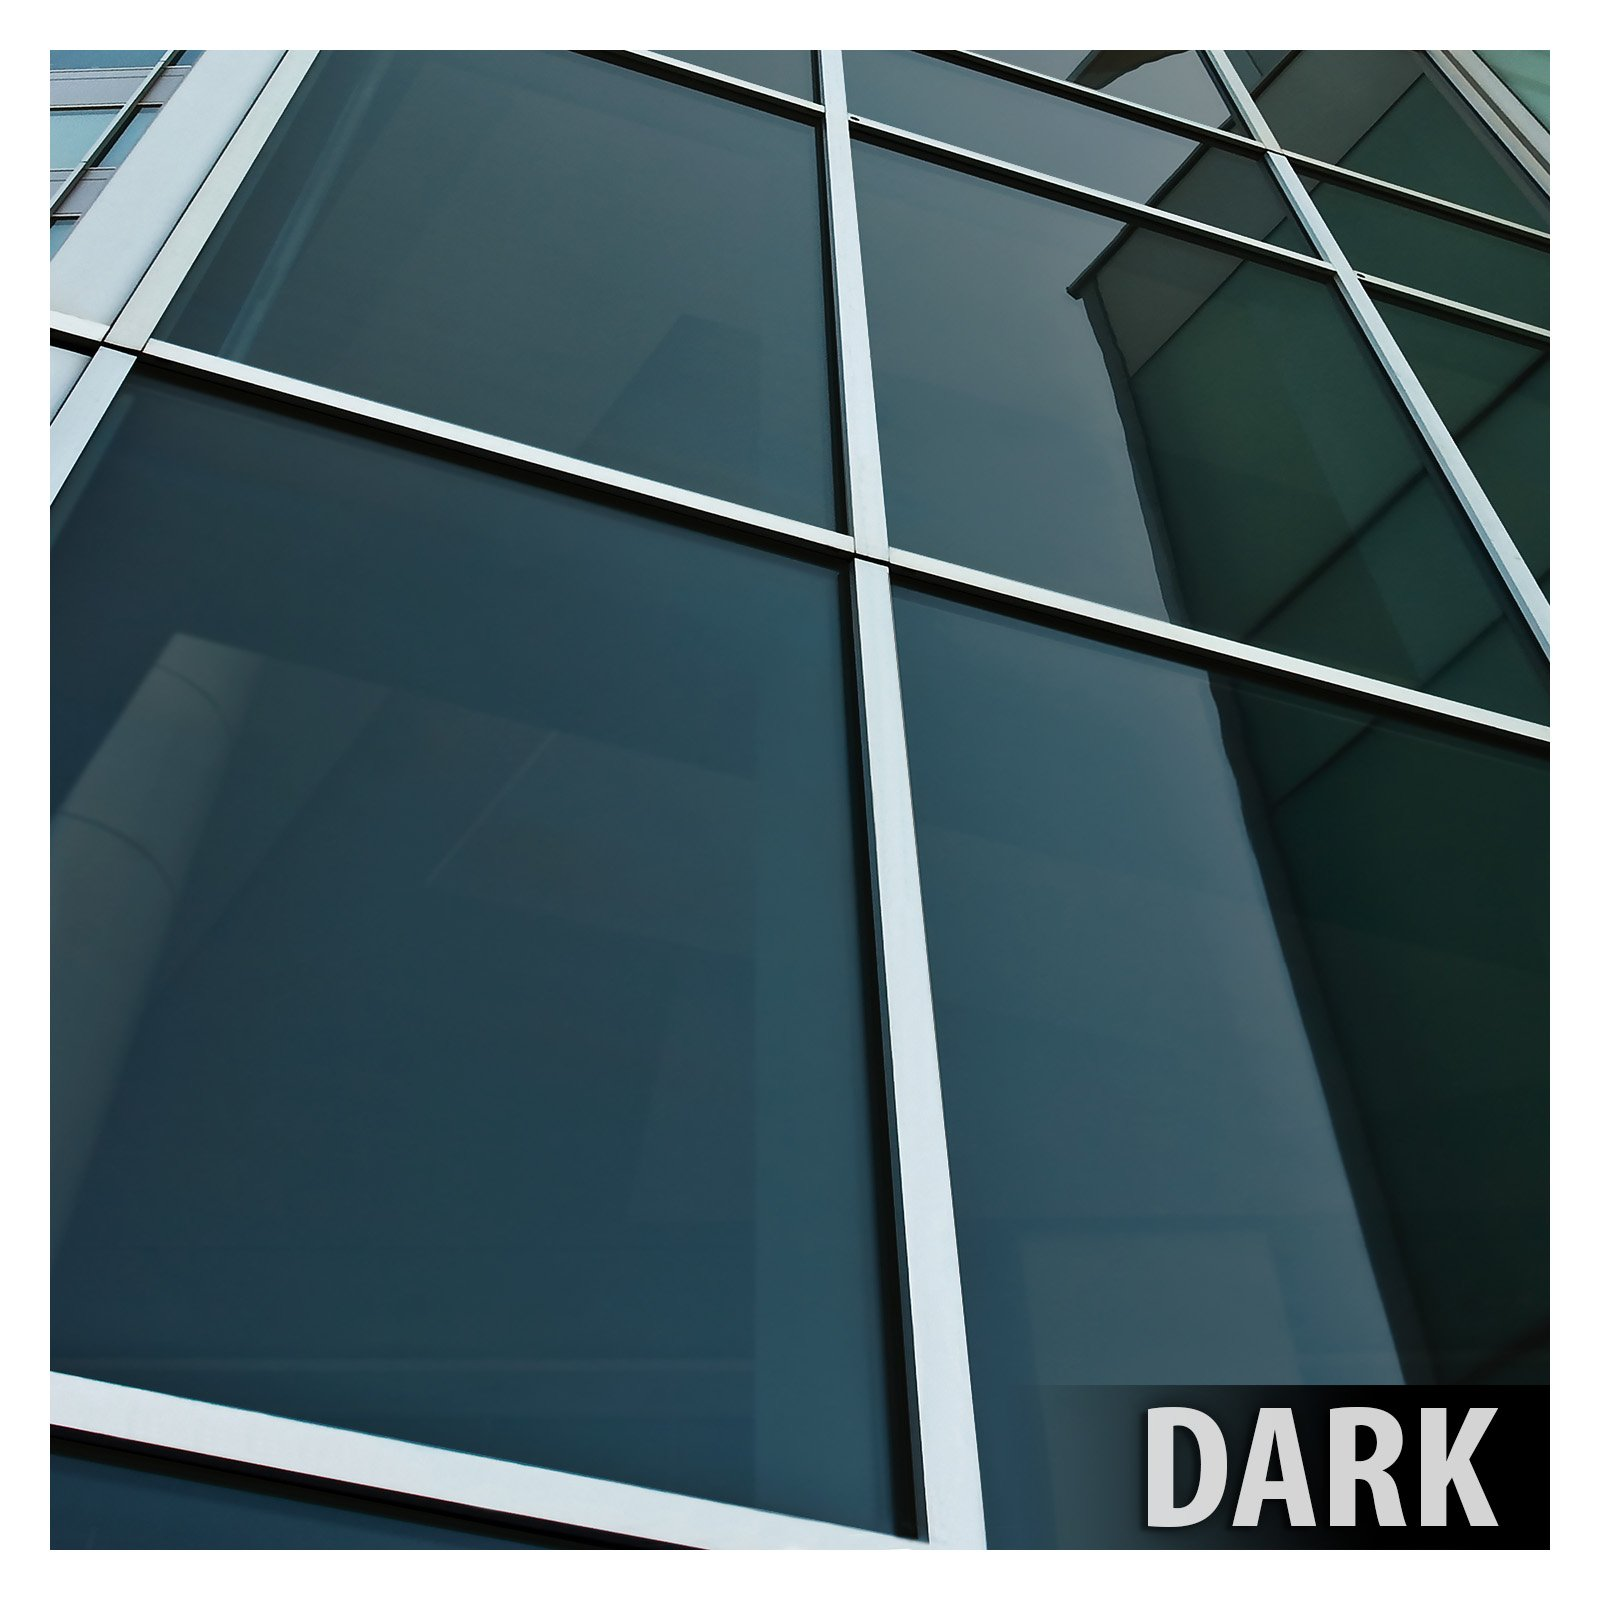 BDF NA20 Window Film Privacy and Sun Control N20, Black (Dark) - 24in X 14ft by Buydecorativefilm